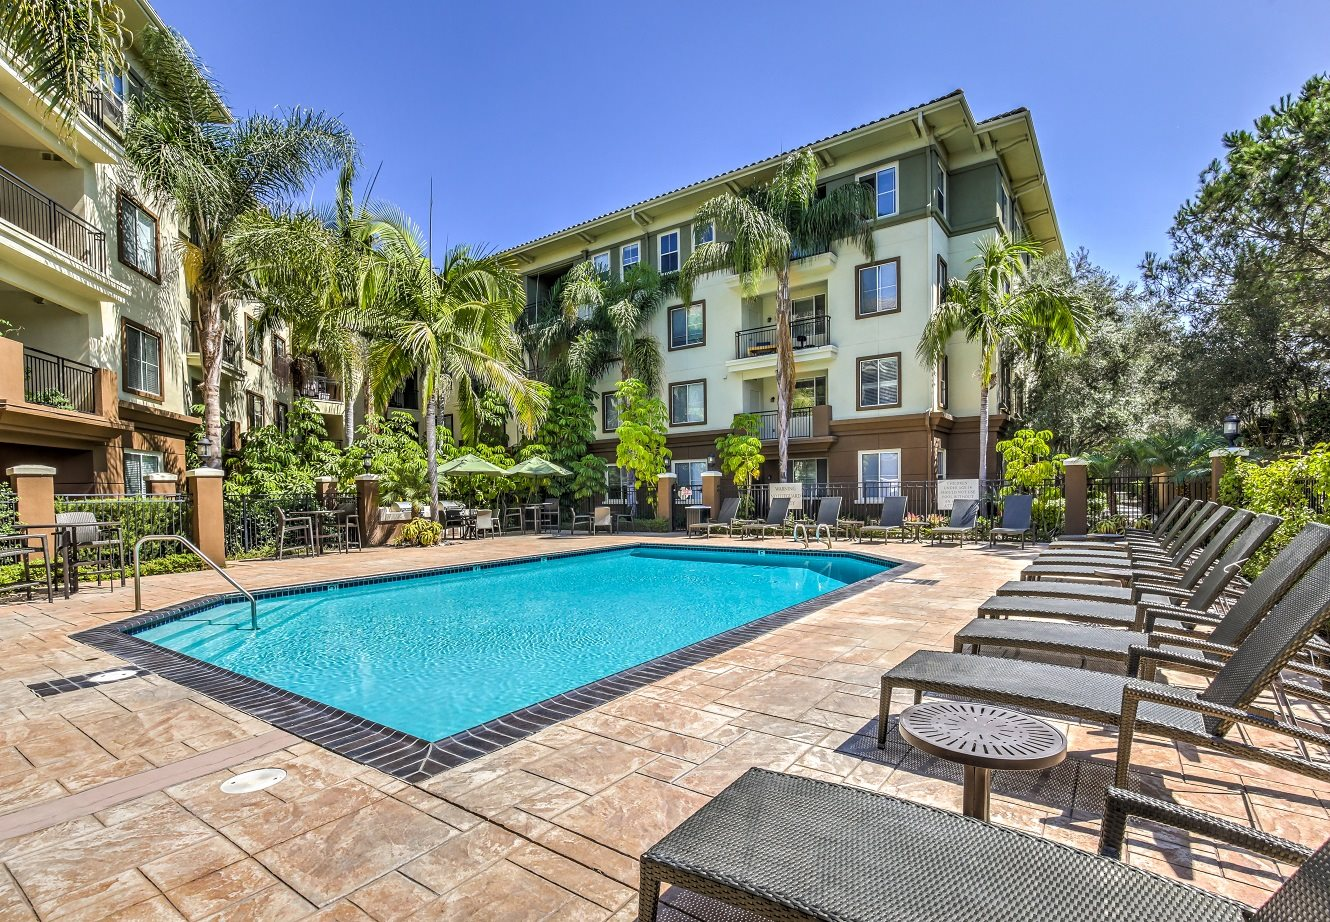 Regents court apartments apartments in san diego ca - 2 bedroom apartments san diego craigslist ...